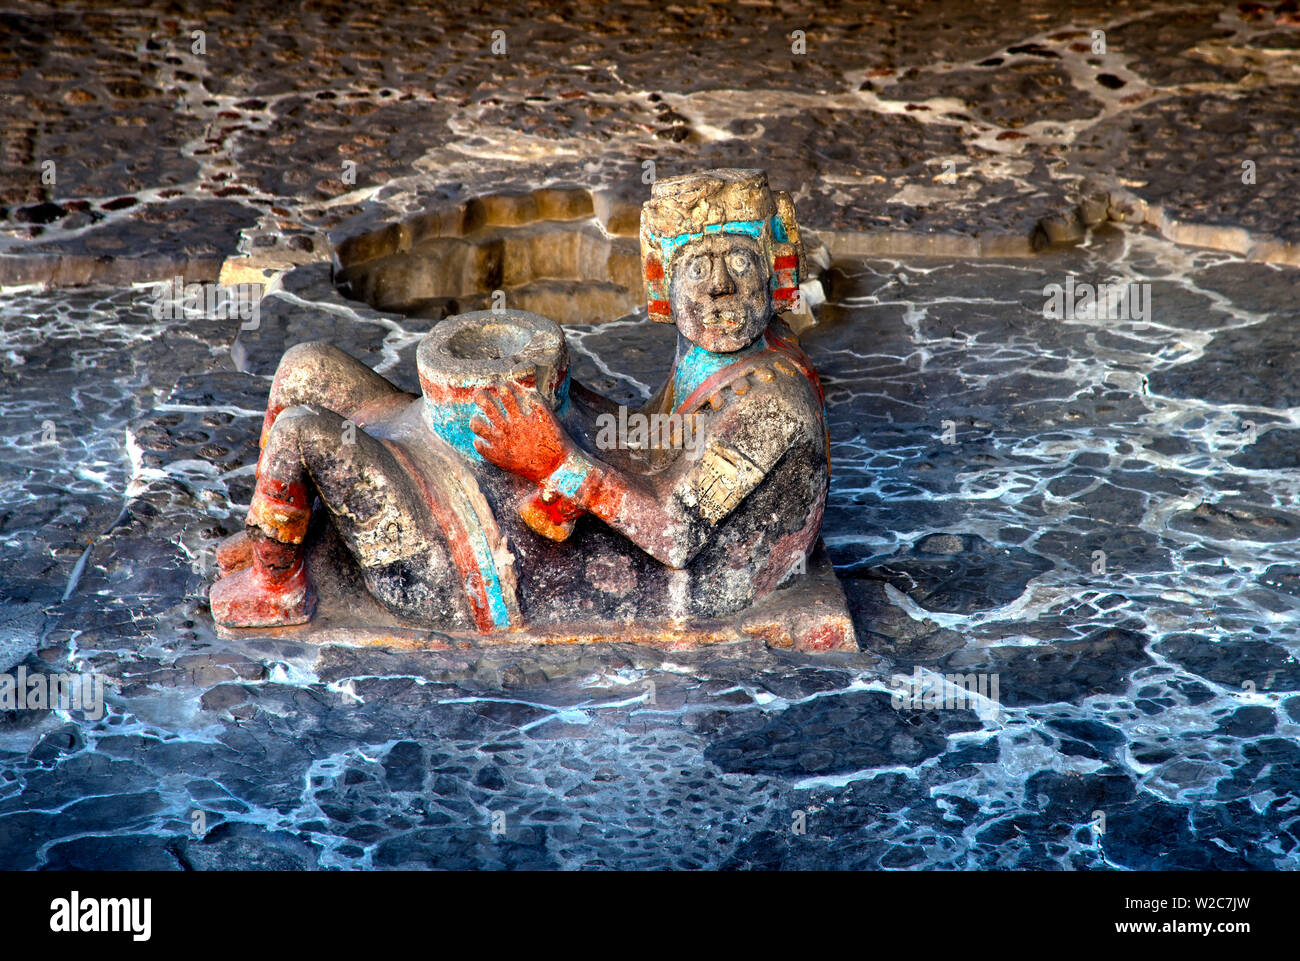 Mexico, Mexico City, Aztec Chacmool, Sculpture, Templo Mayor, Great Temple, Tenochtitlan, Centro Historico Stock Photo